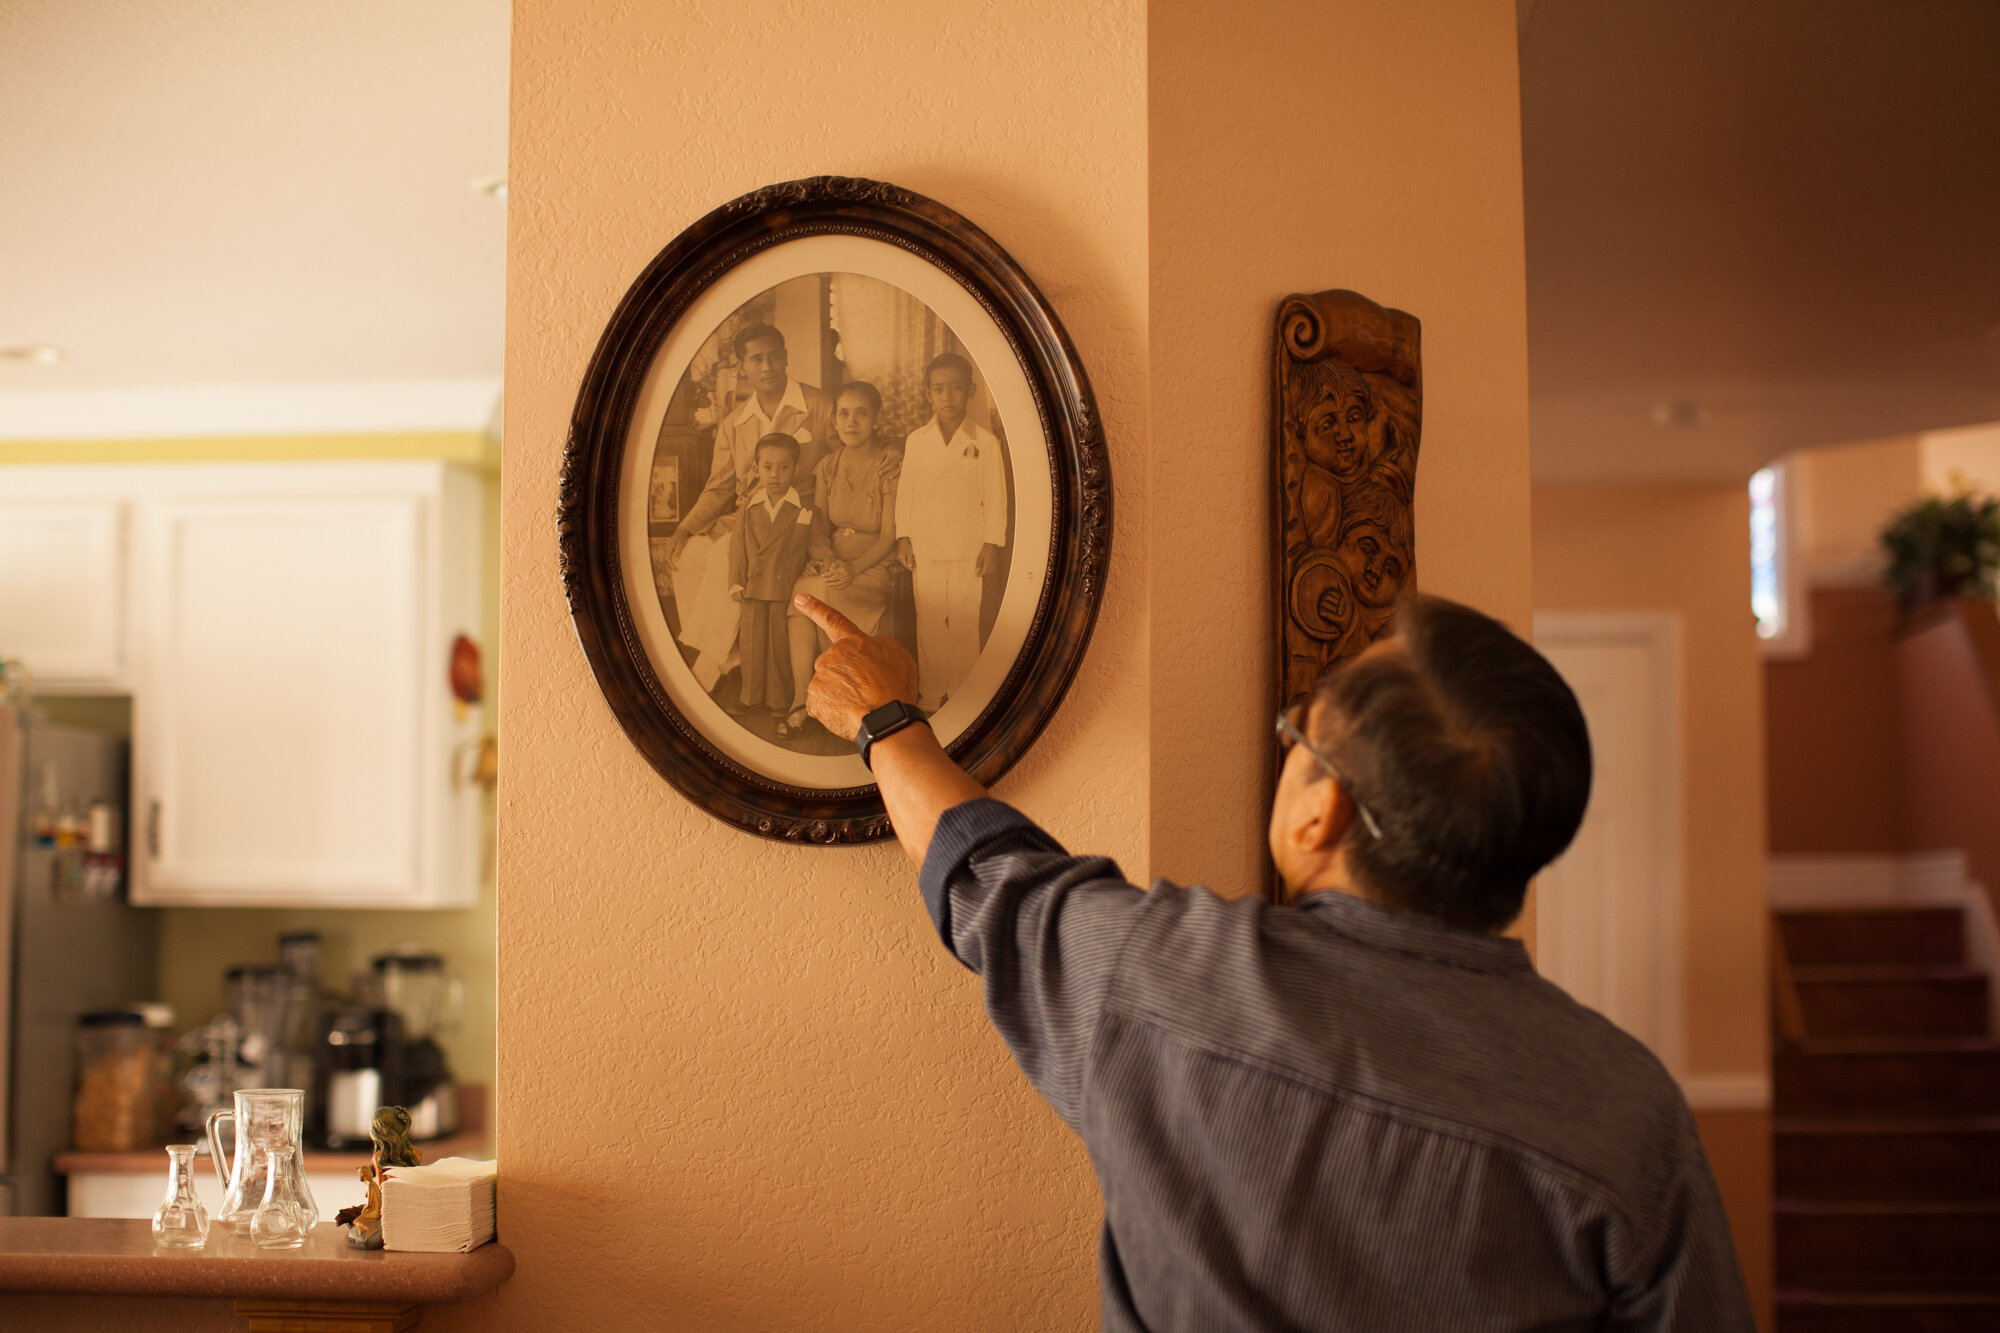 Manolo Guerra points out himself in an old family portrait at his home in Moreno Valley, California, Wednesday, Aug. 7, 2019. (Photo/ Kat Kaye)